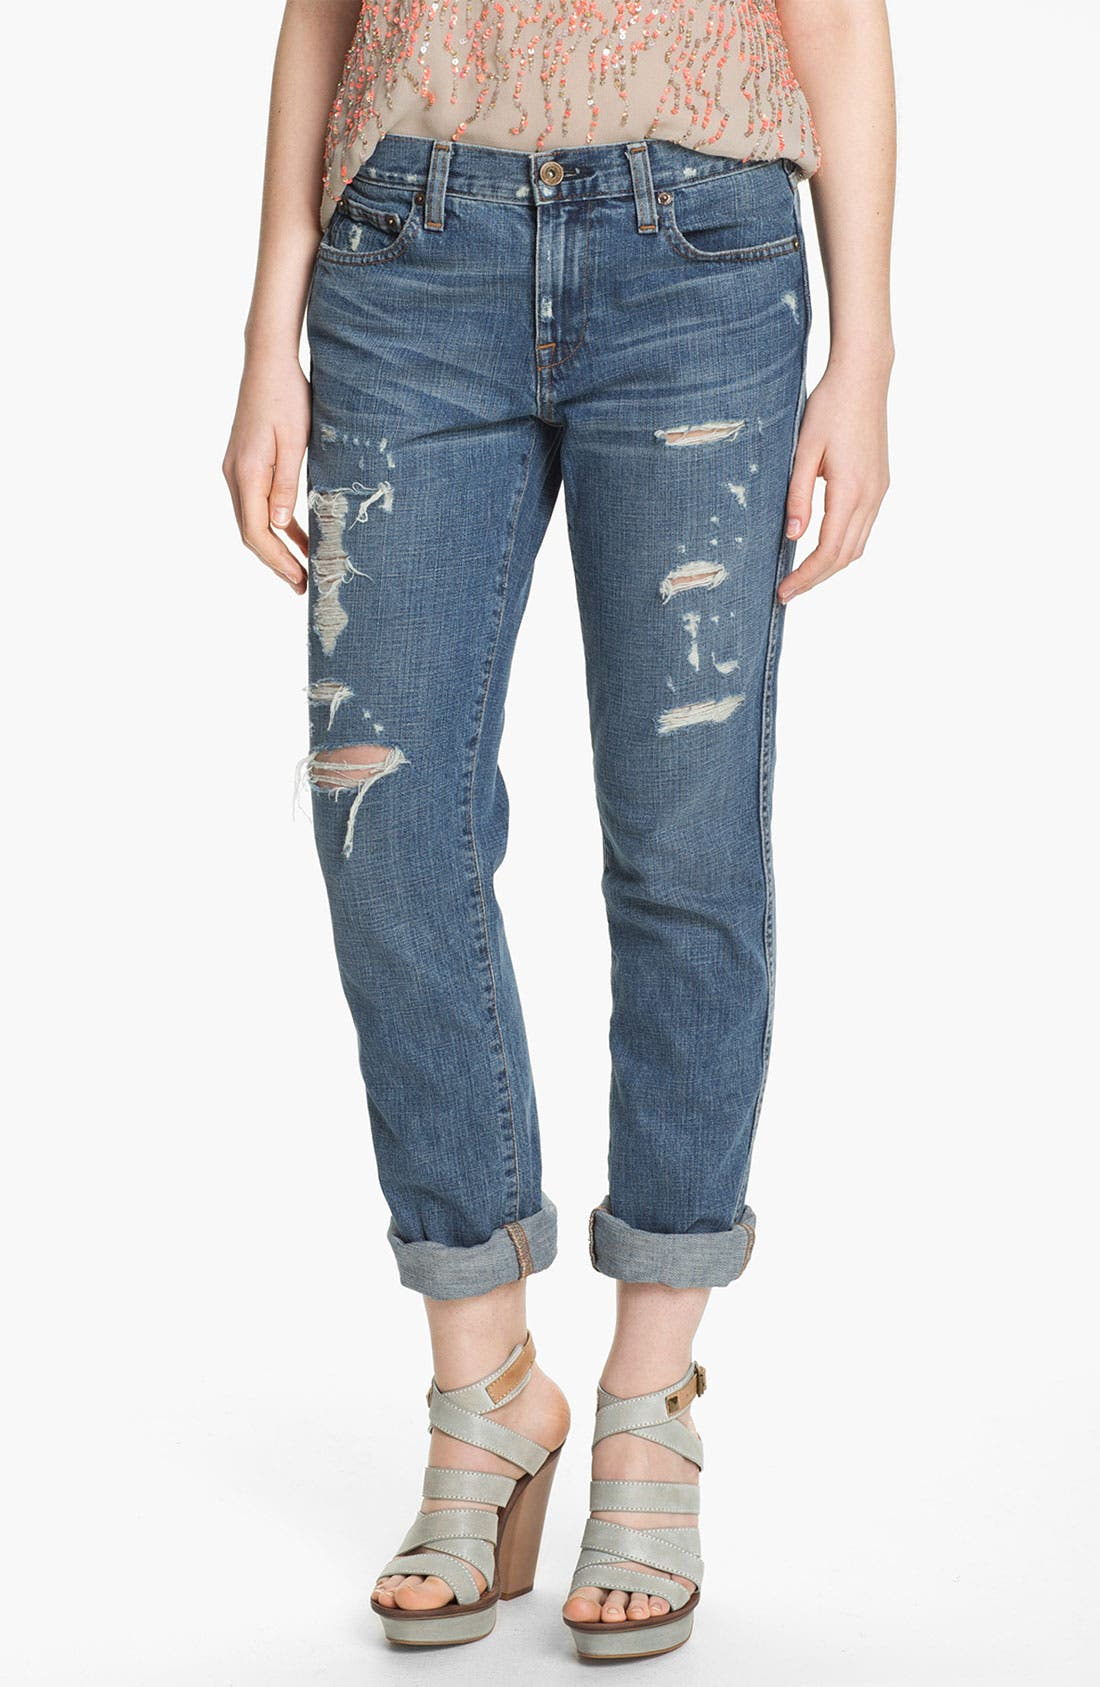 Alternate Image 1 Selected - Two by Vince Camuto Destroyed Boyfriend Jeans